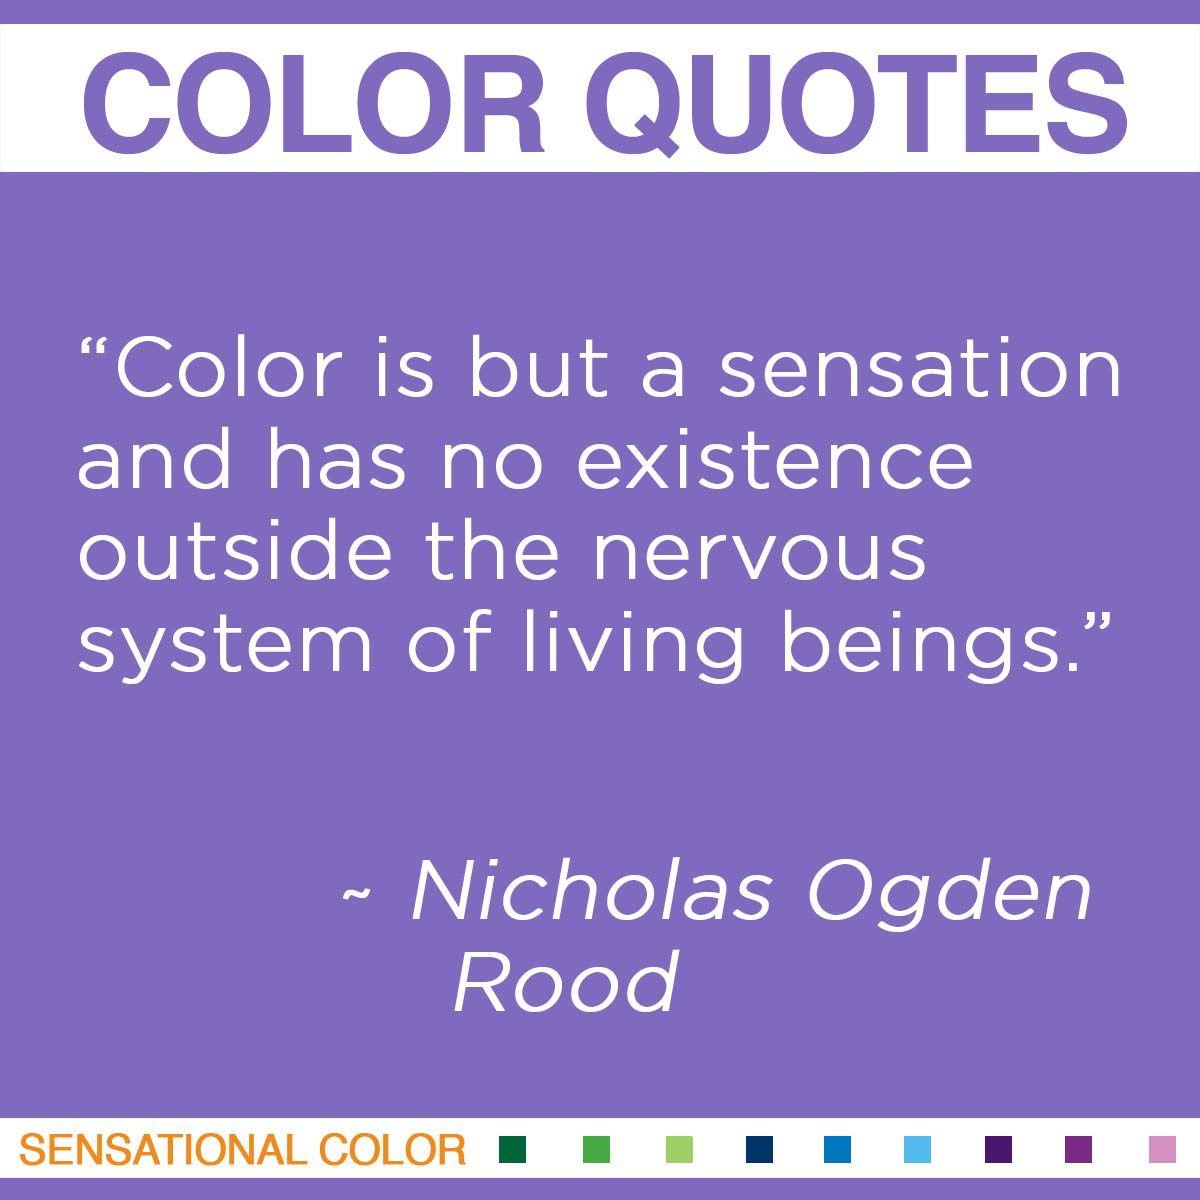 """Color is but a sensation and has no existence outside the nervous system of living beings."" - Nicholas Ogden Rood"